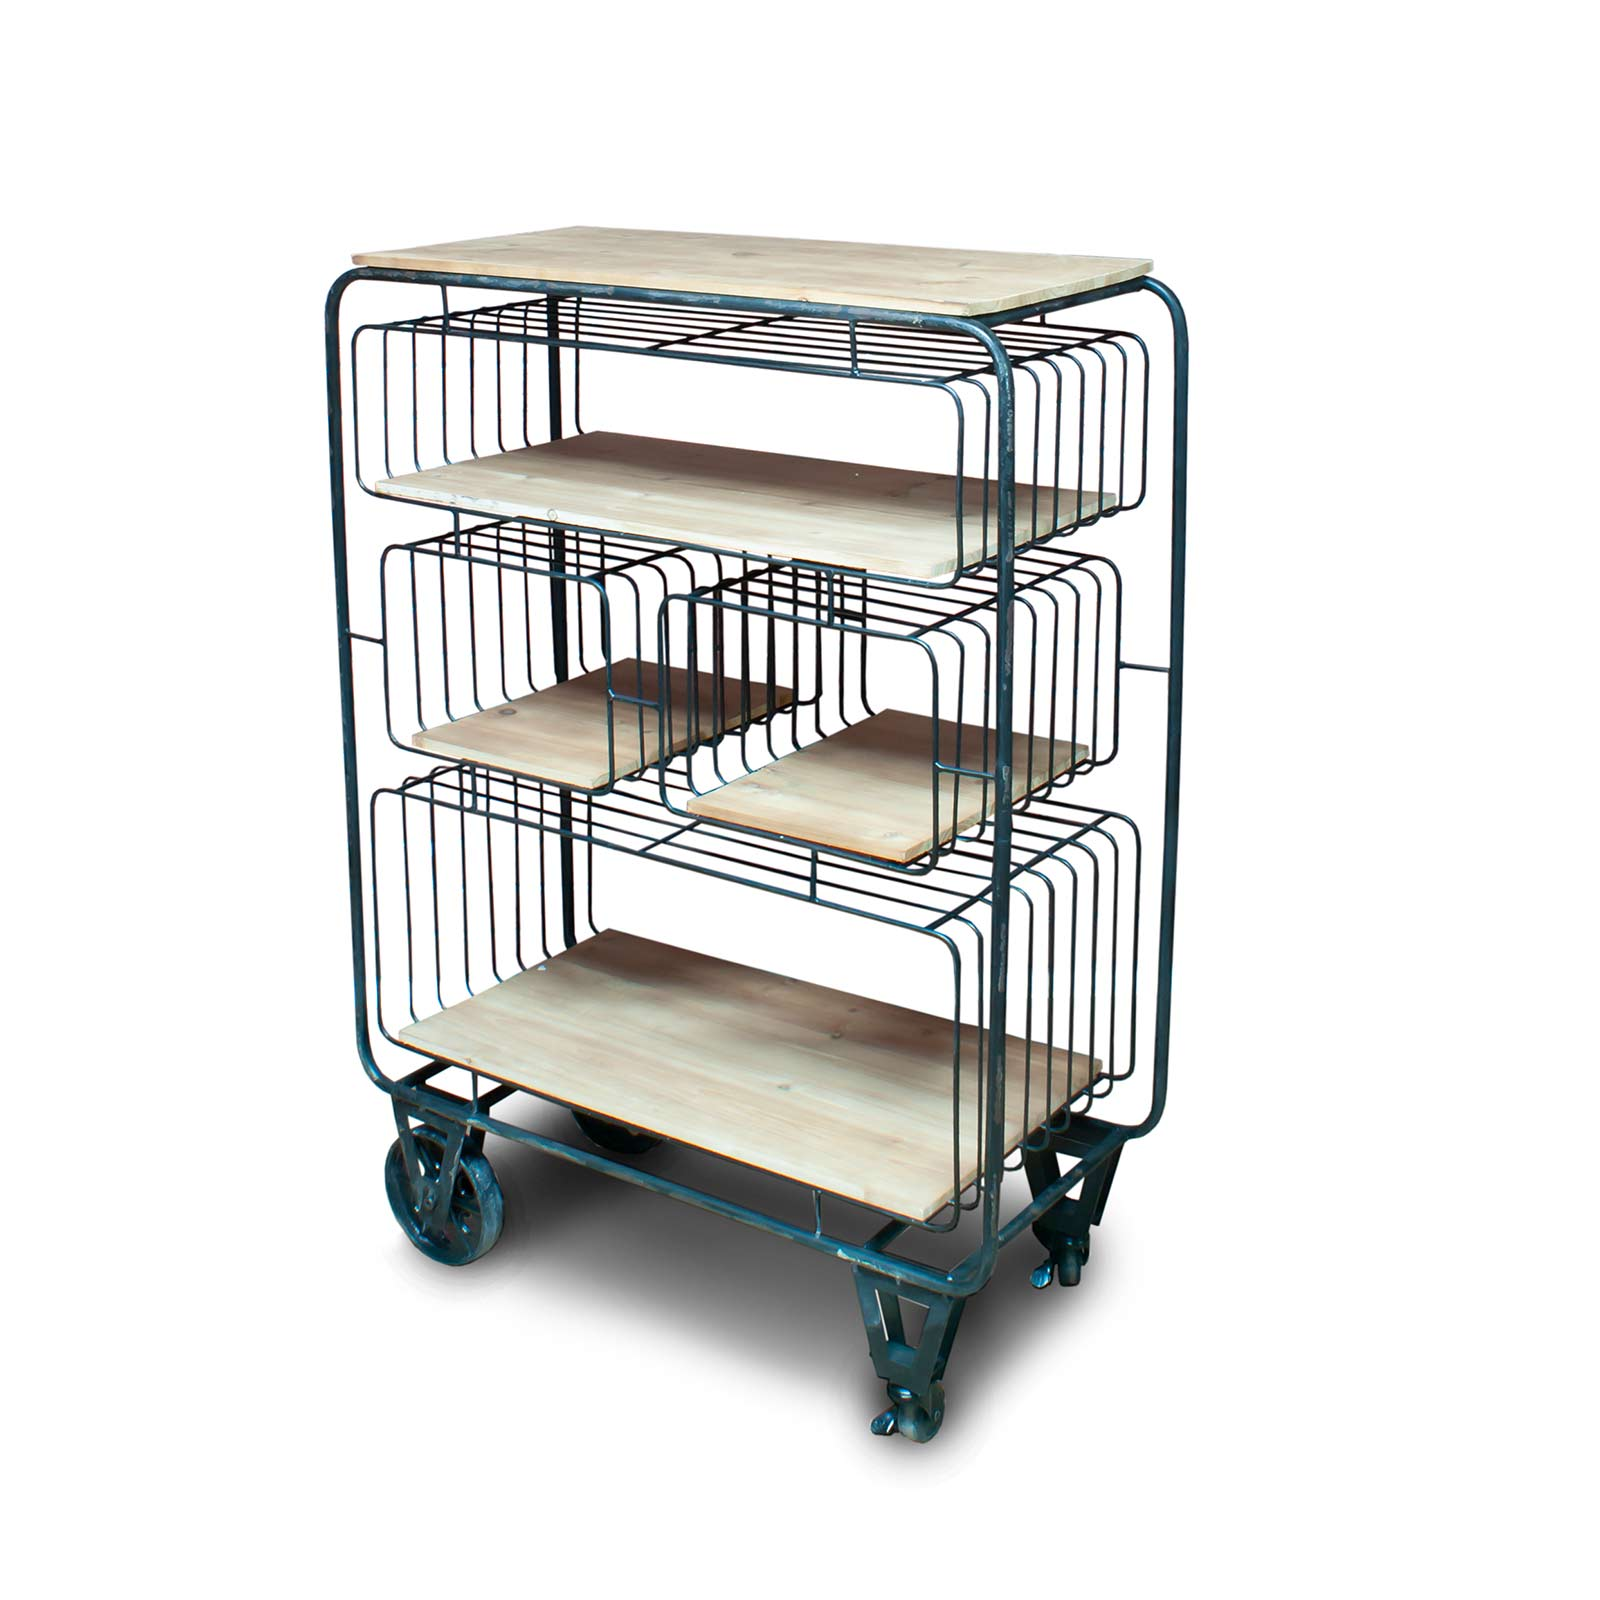 Shelving Display   Industrial Style Storage Home Retail Shelving Unit with  Wheels DI20